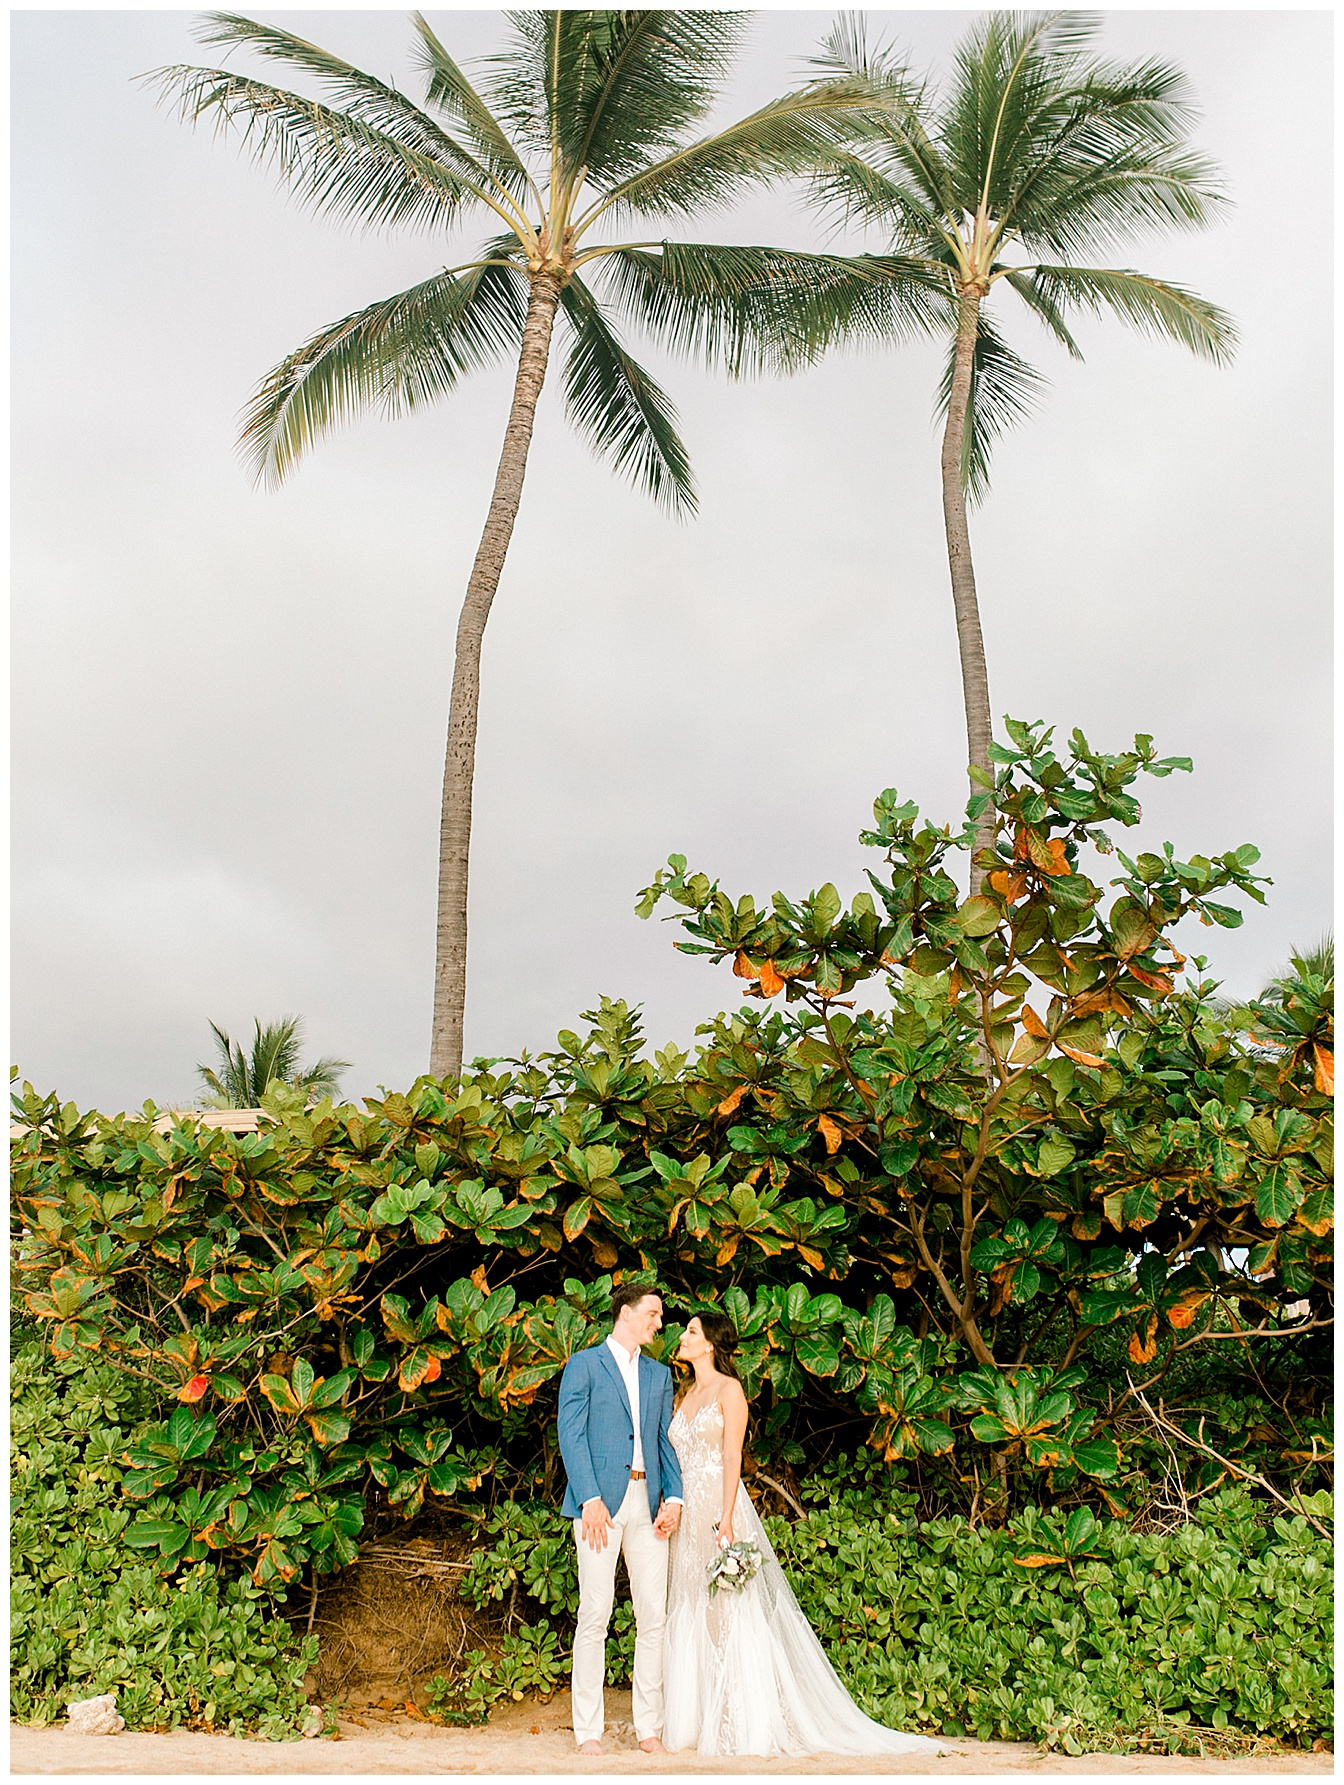 Makena-Cove-Maui-Elopement_0027.jpg